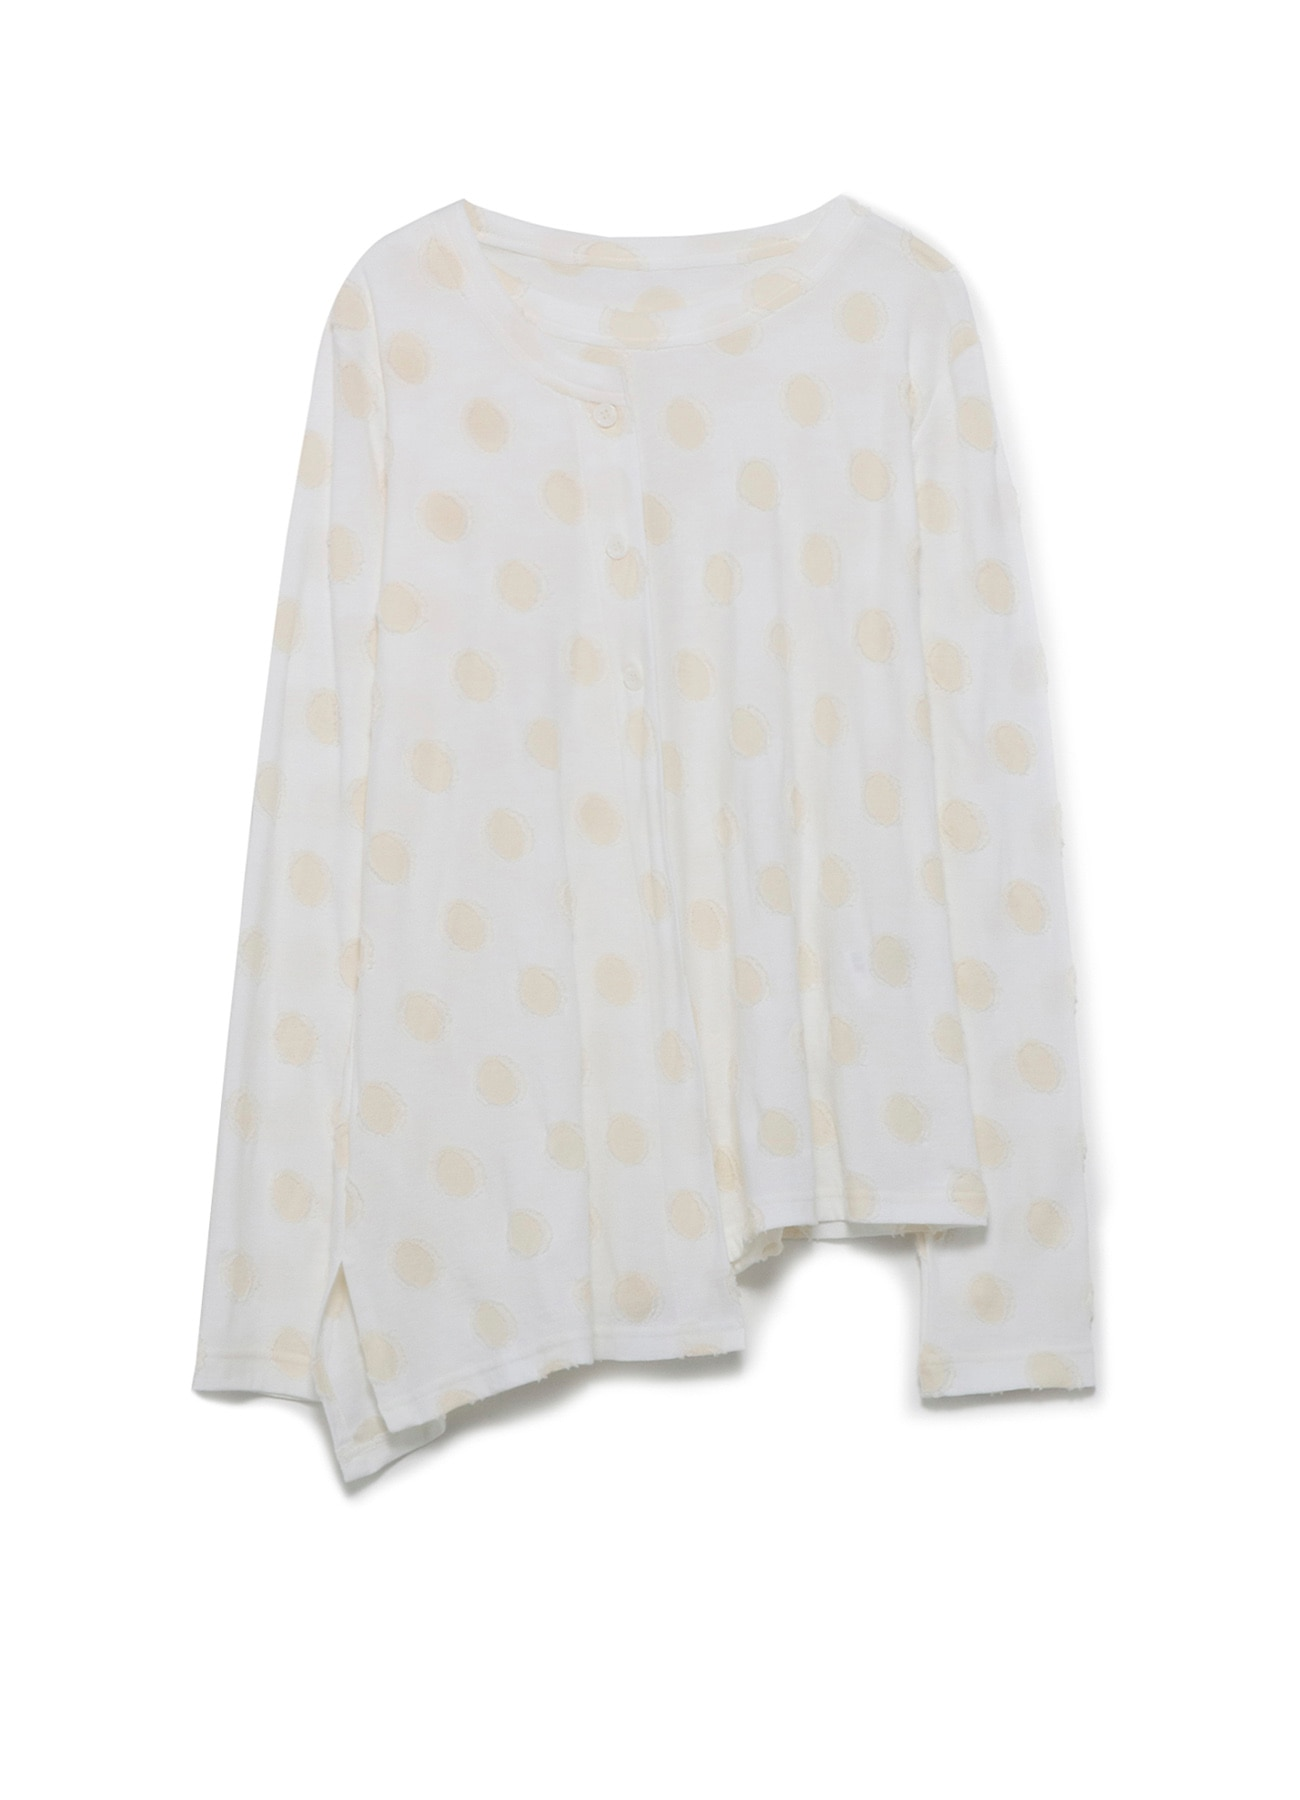 DOT CUT JACQUARD RIGHT LAYERED LONG T-SHIRT